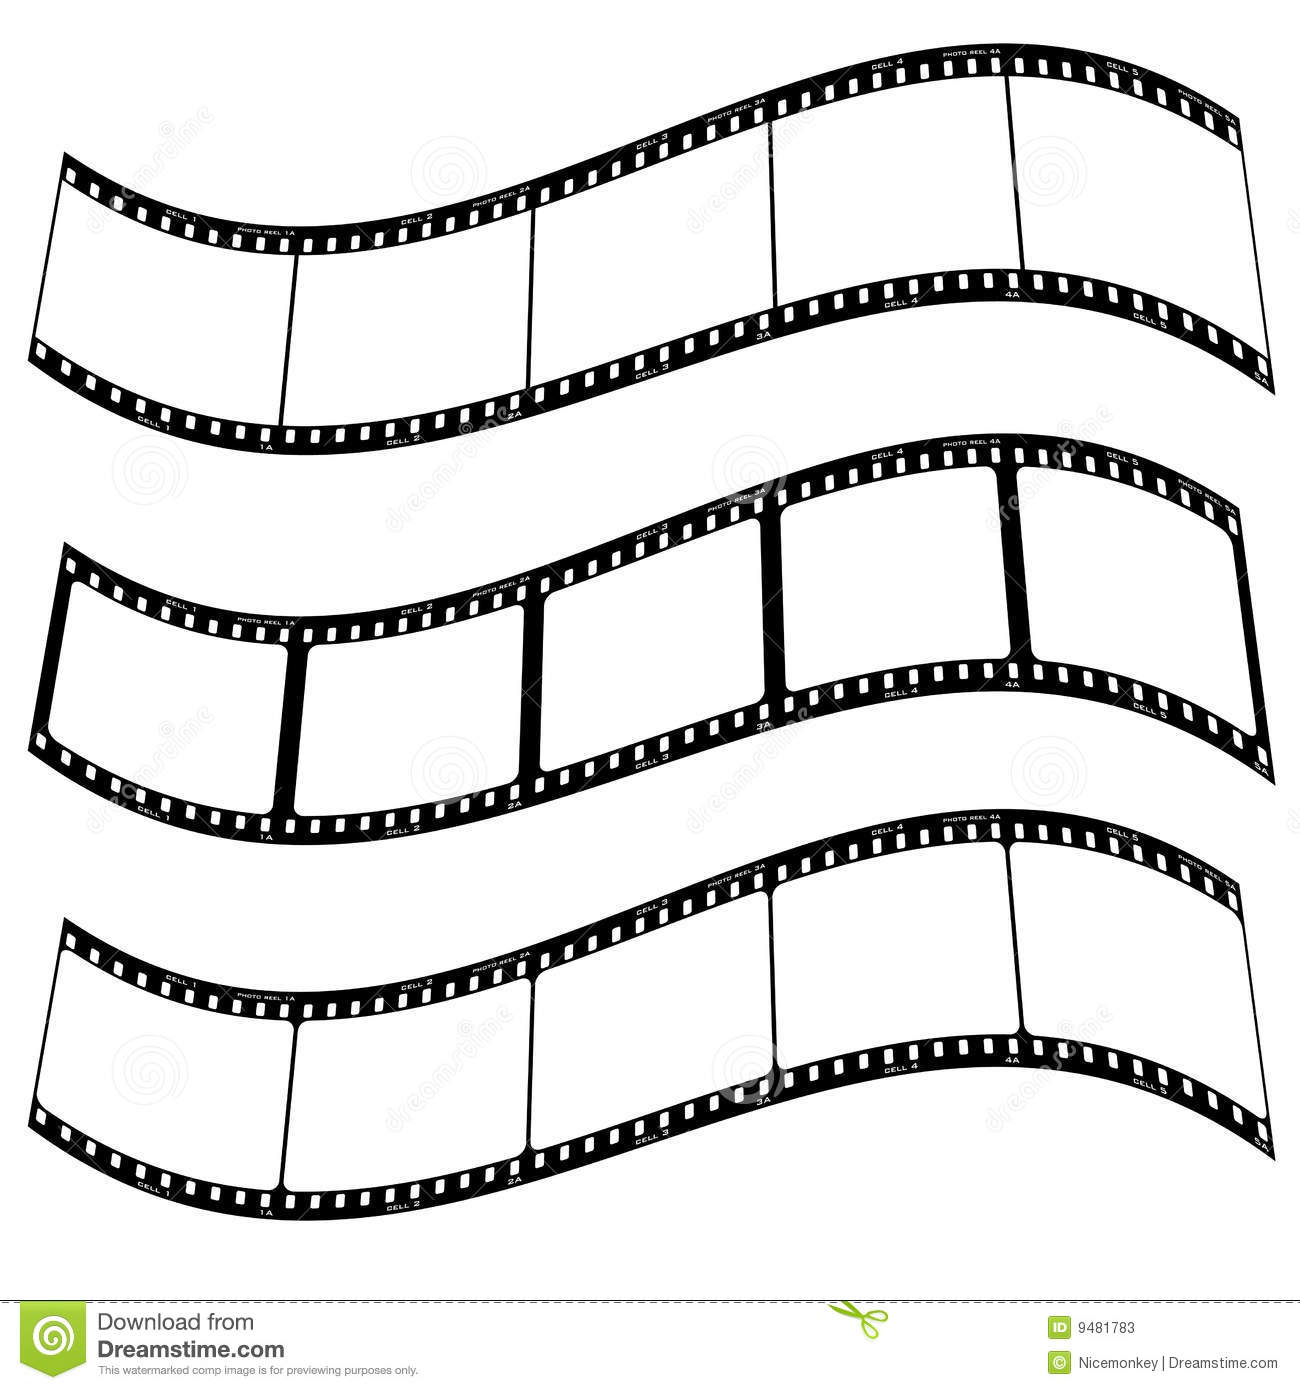 Film strip wave picture frame warehouse 13 dvd cover change the look of your rooms in a heartbeat with dezign with a zs movie strip picture frame wall decal order movie strip picture frame wall decal today jeuxipadfo Image collections